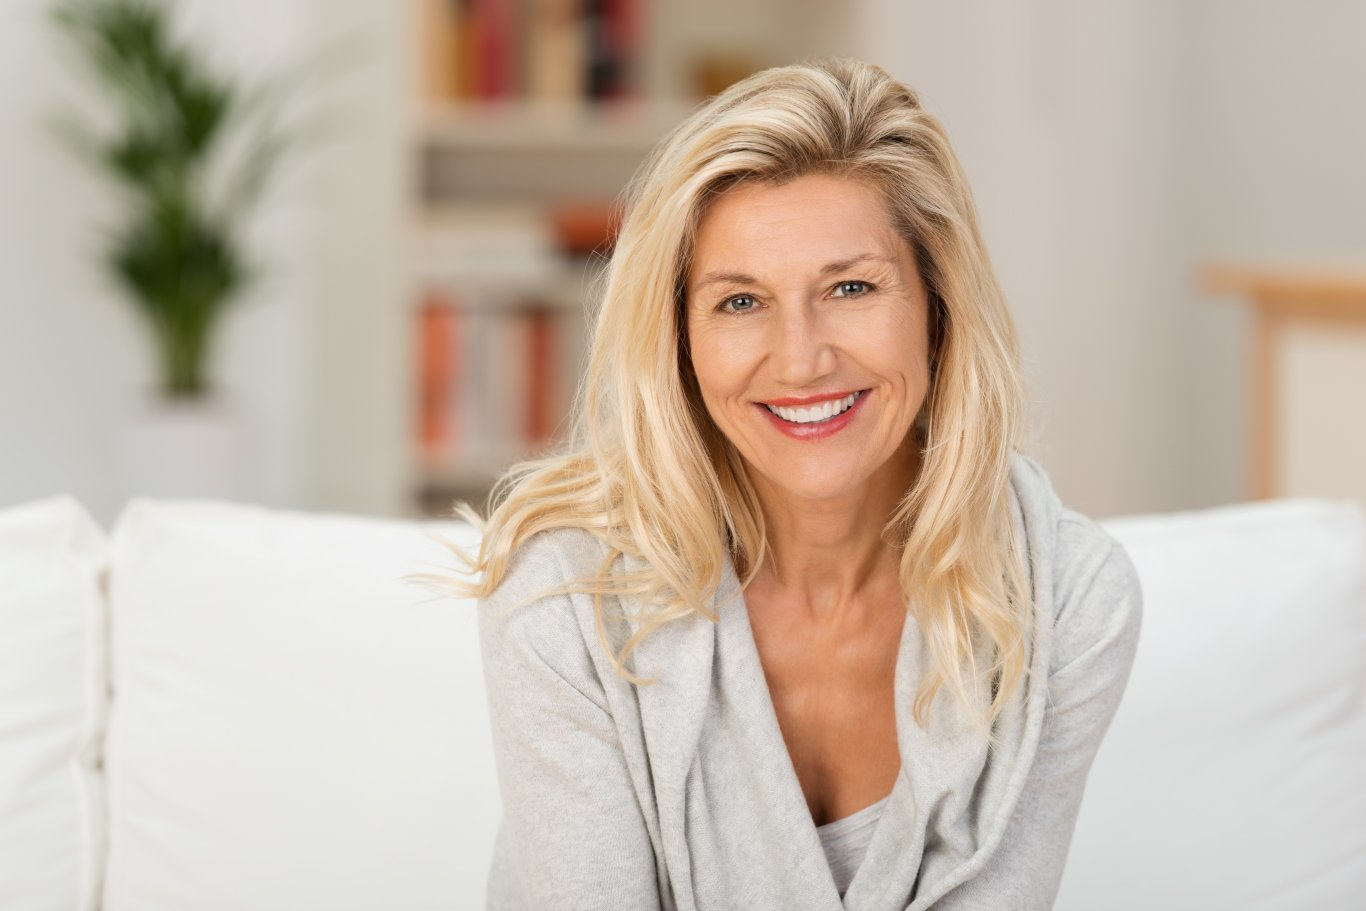 Facelift results can last for several years, but are not permanent. Our Denver plastic surgeon offers spa services that can help extend your facelift results. Call 303-470-3400 to learn more